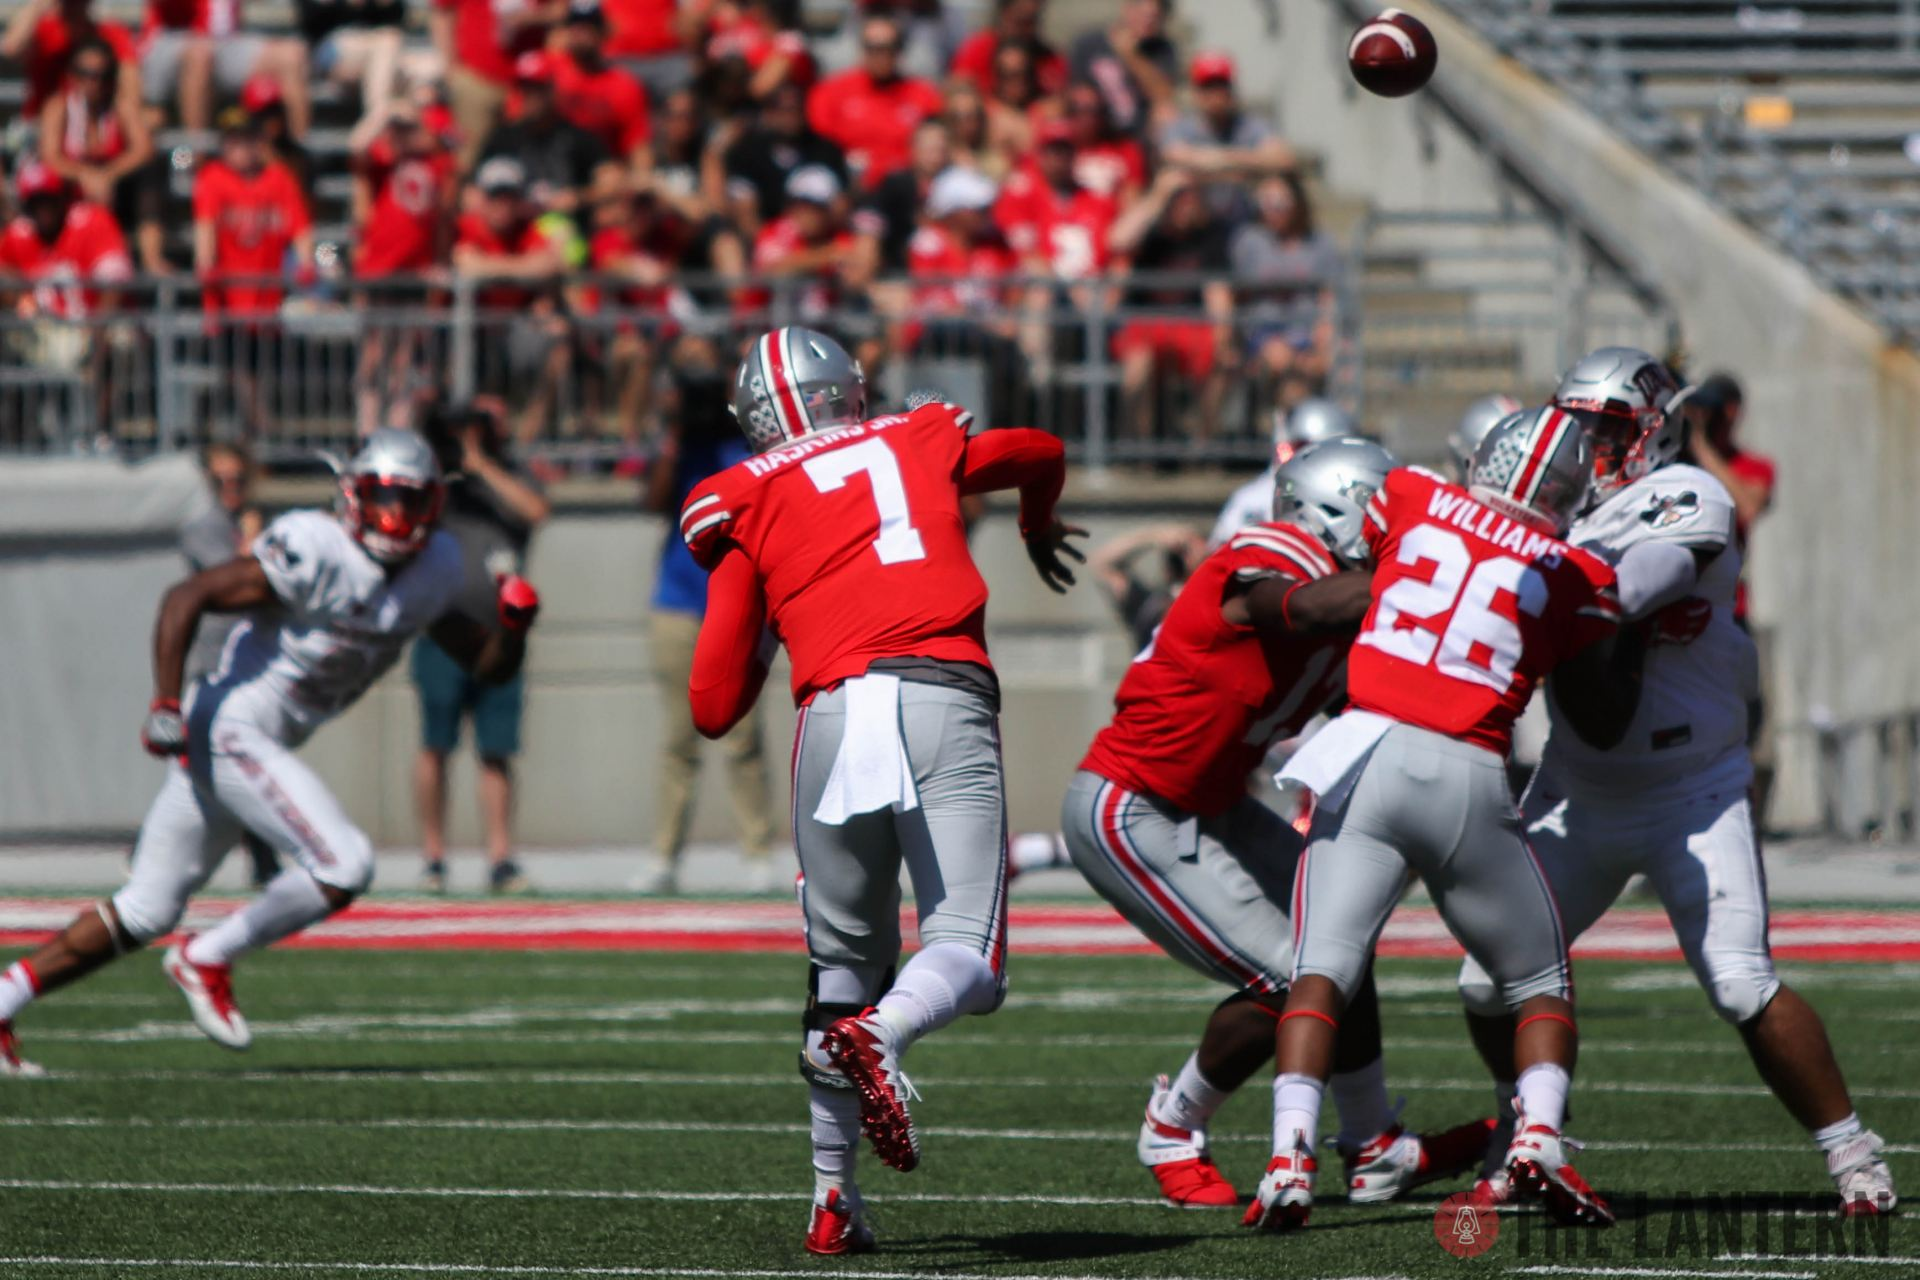 Football: Ohio State receives extended look at Dwayne Haskins in win over UNLV